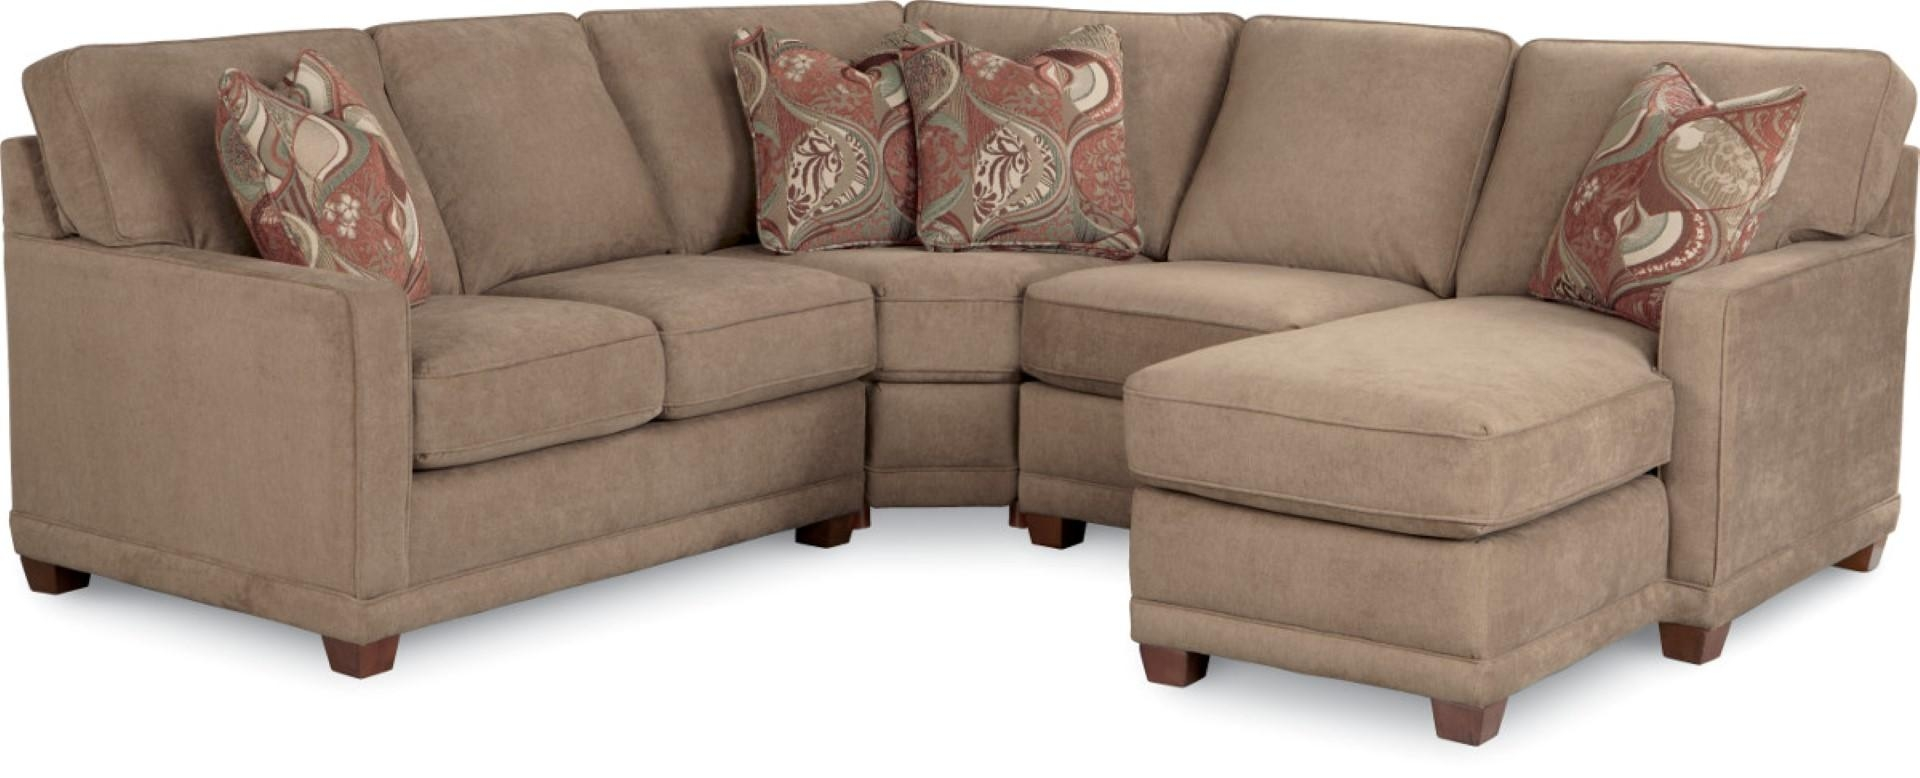 Furniture: Lazyboy Sectional With Cool Various Designs And Colors Within Lazy Boy Sectional (Image 10 of 20)